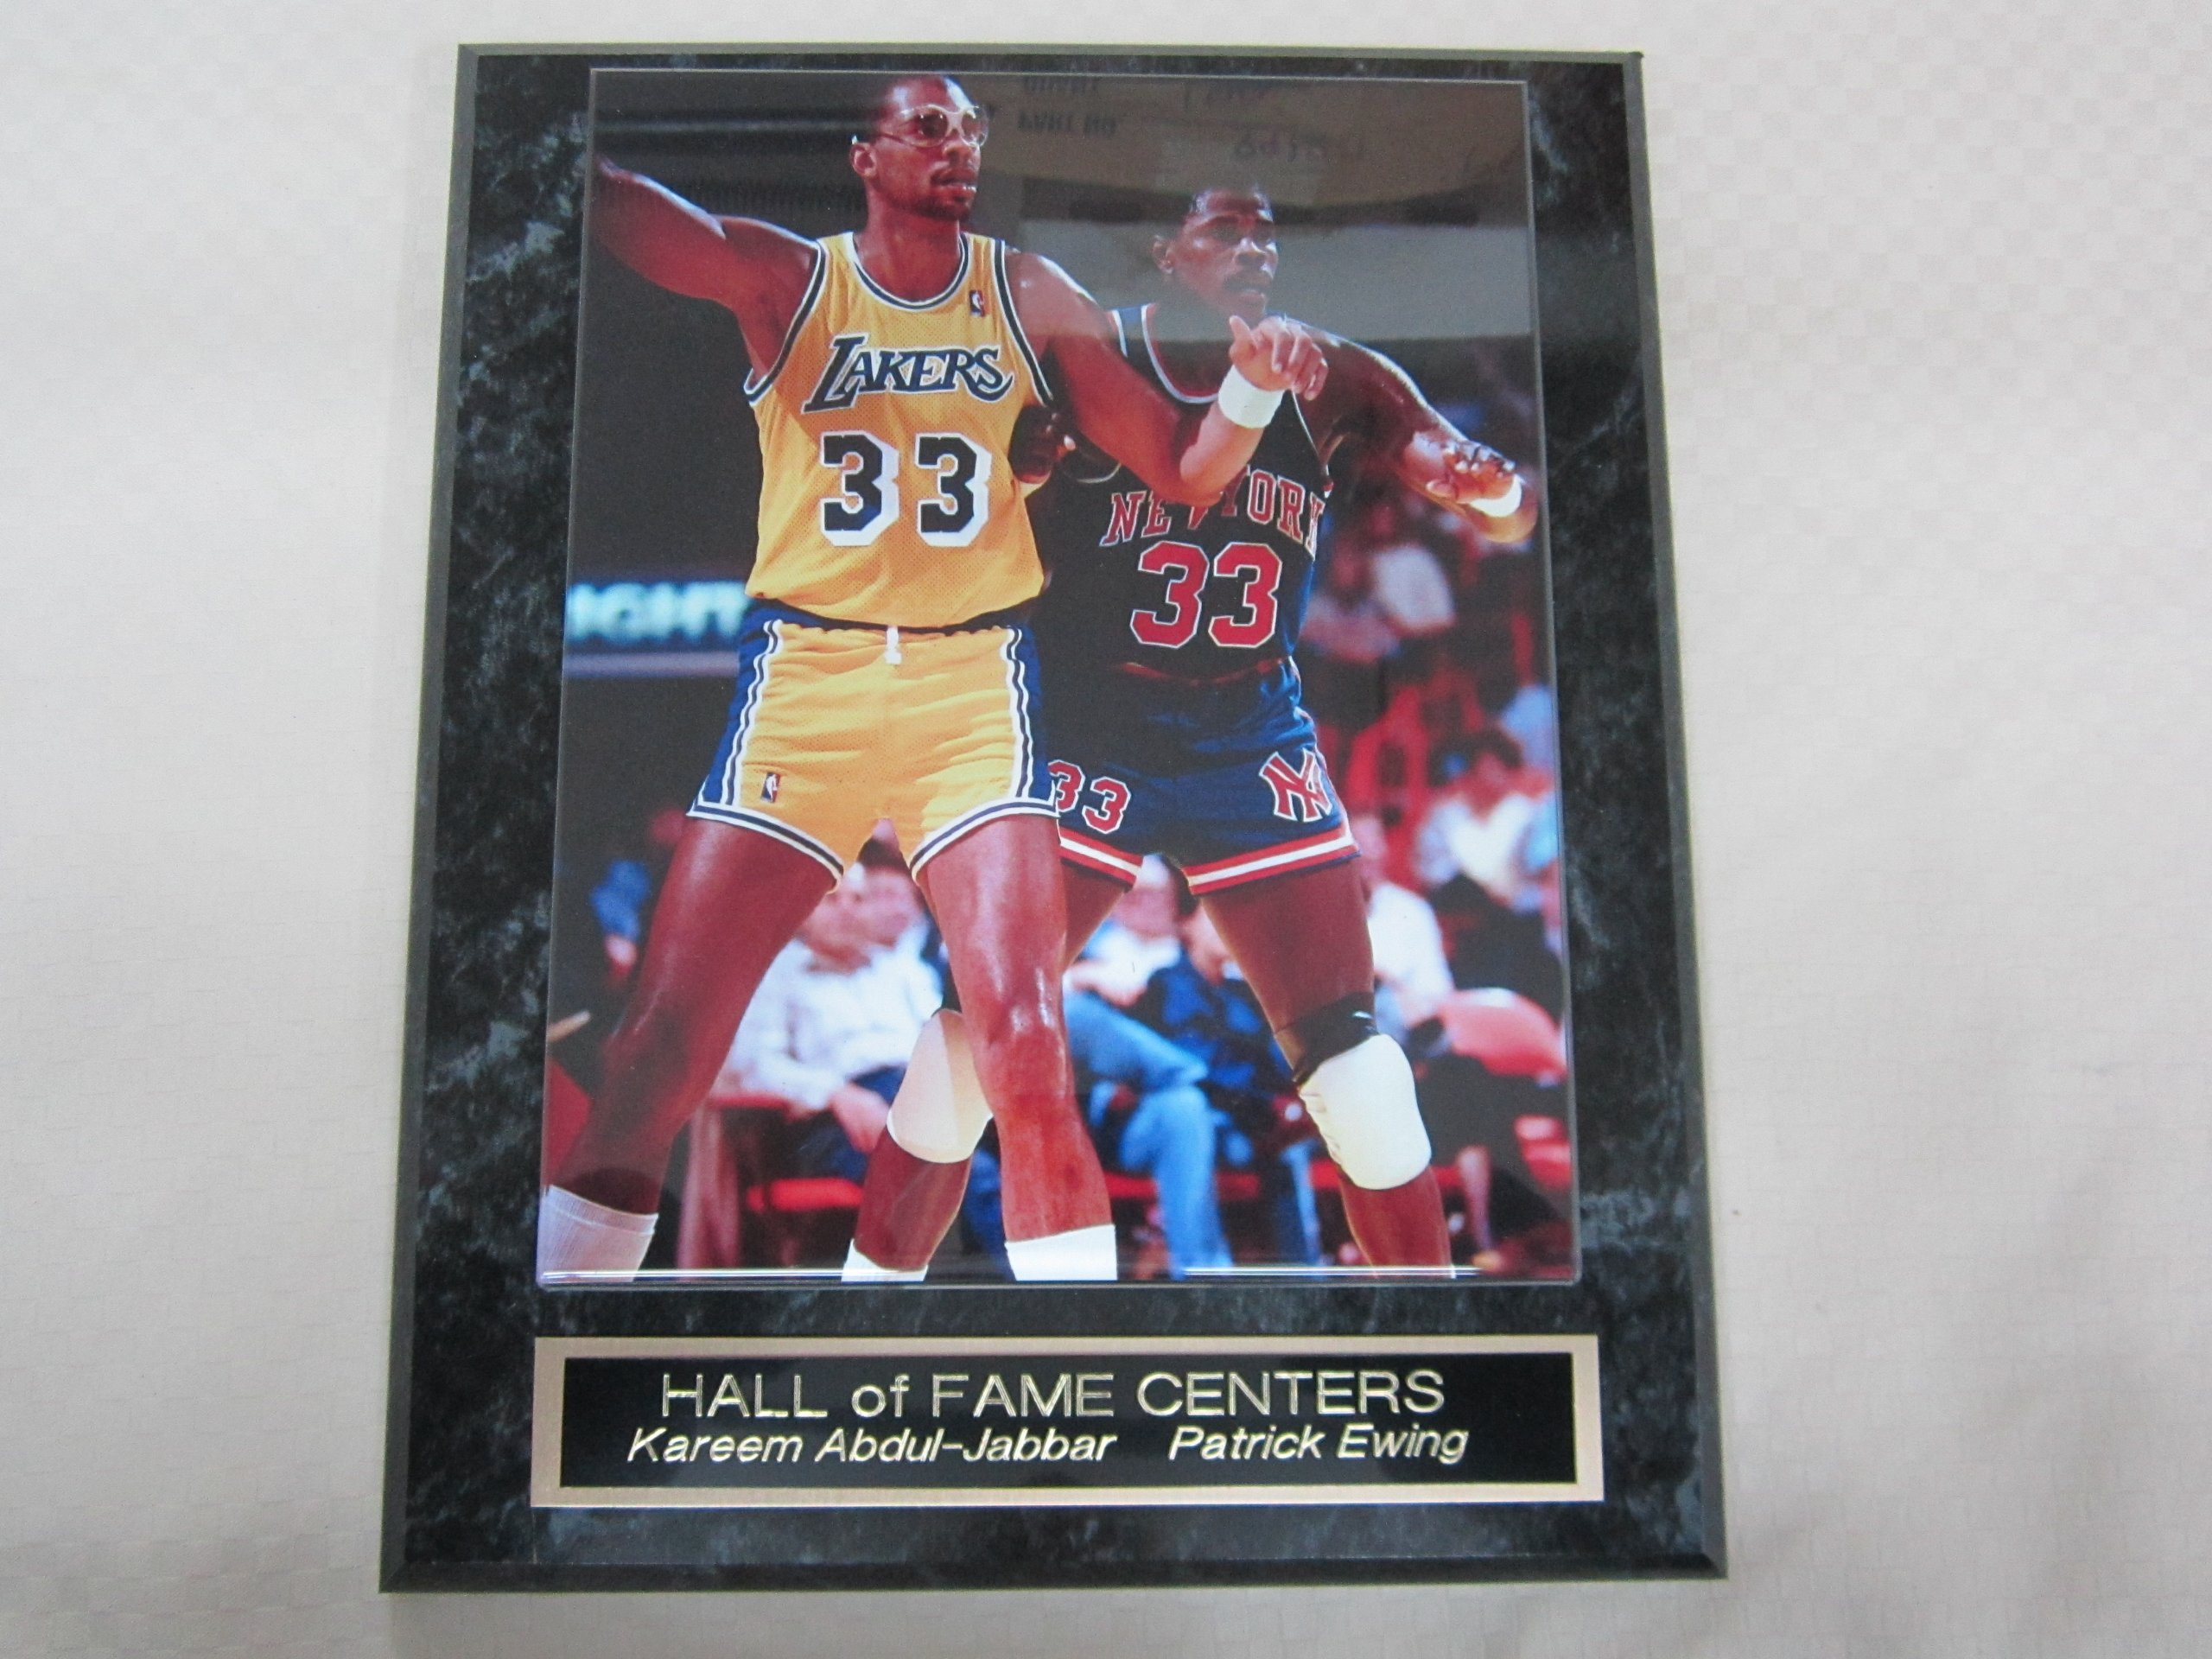 Kareem Abdul Jabbar Patrick Ewing Collector Plaque w/Color 8x10 Photo